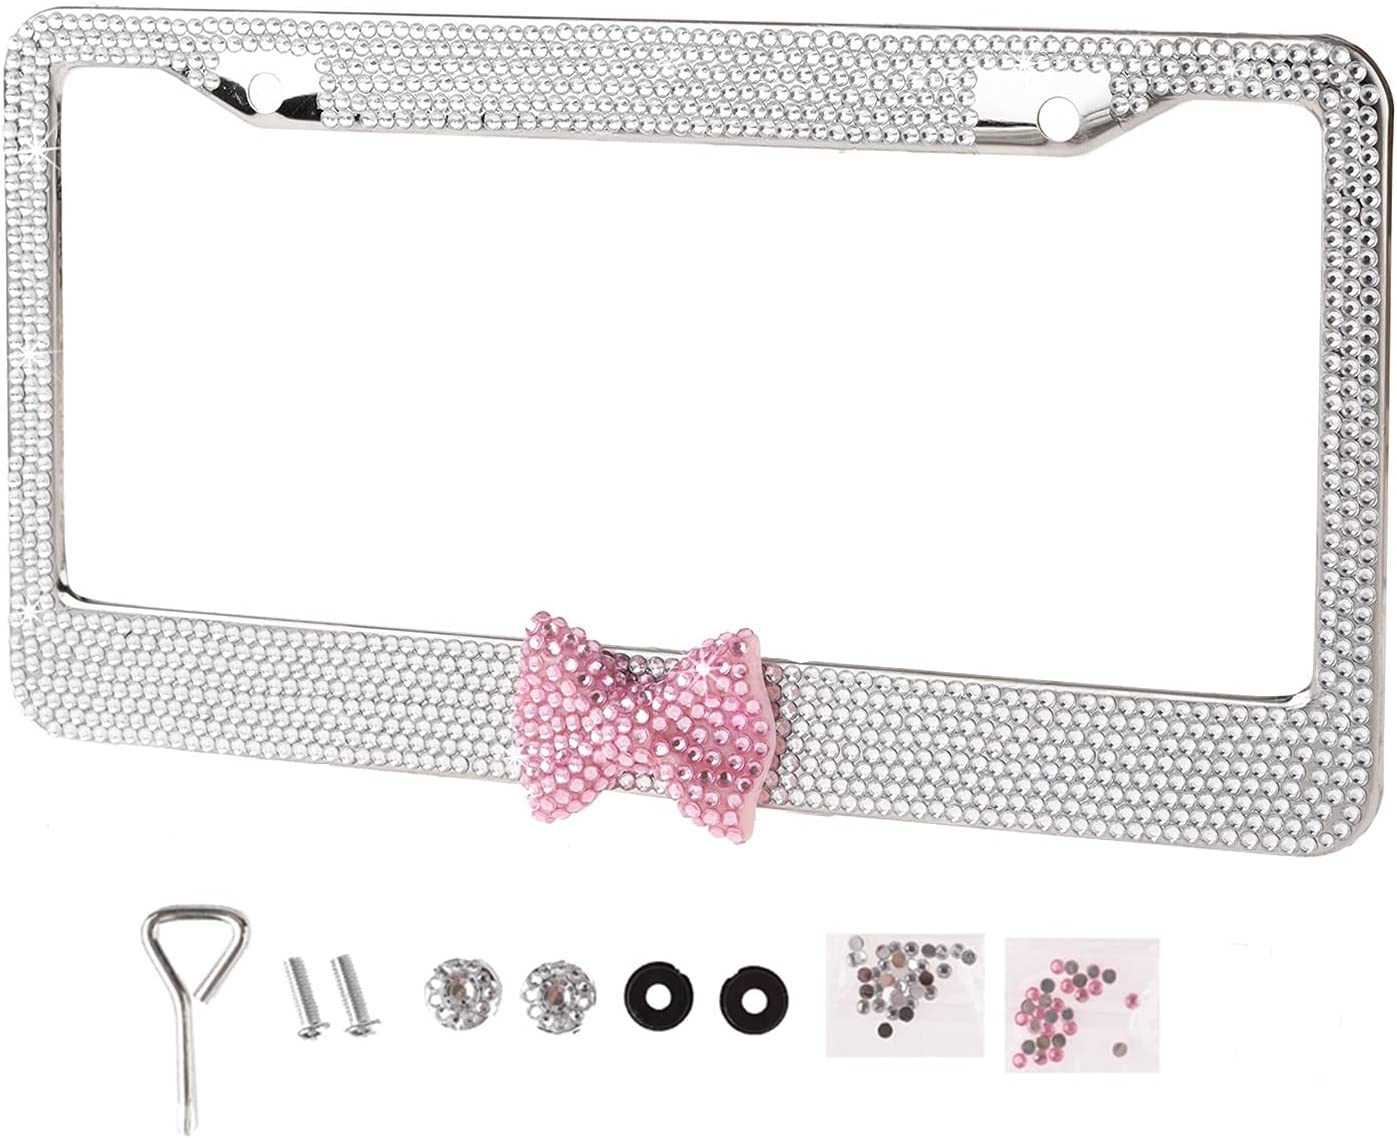 Hot Clear Frame with Pink Bowtie Bling Crystal License Plate Frame Cute Rhinestone Car/Truck/SUV License Plate Holder for Woman,Lady,Girl (1 Frame)